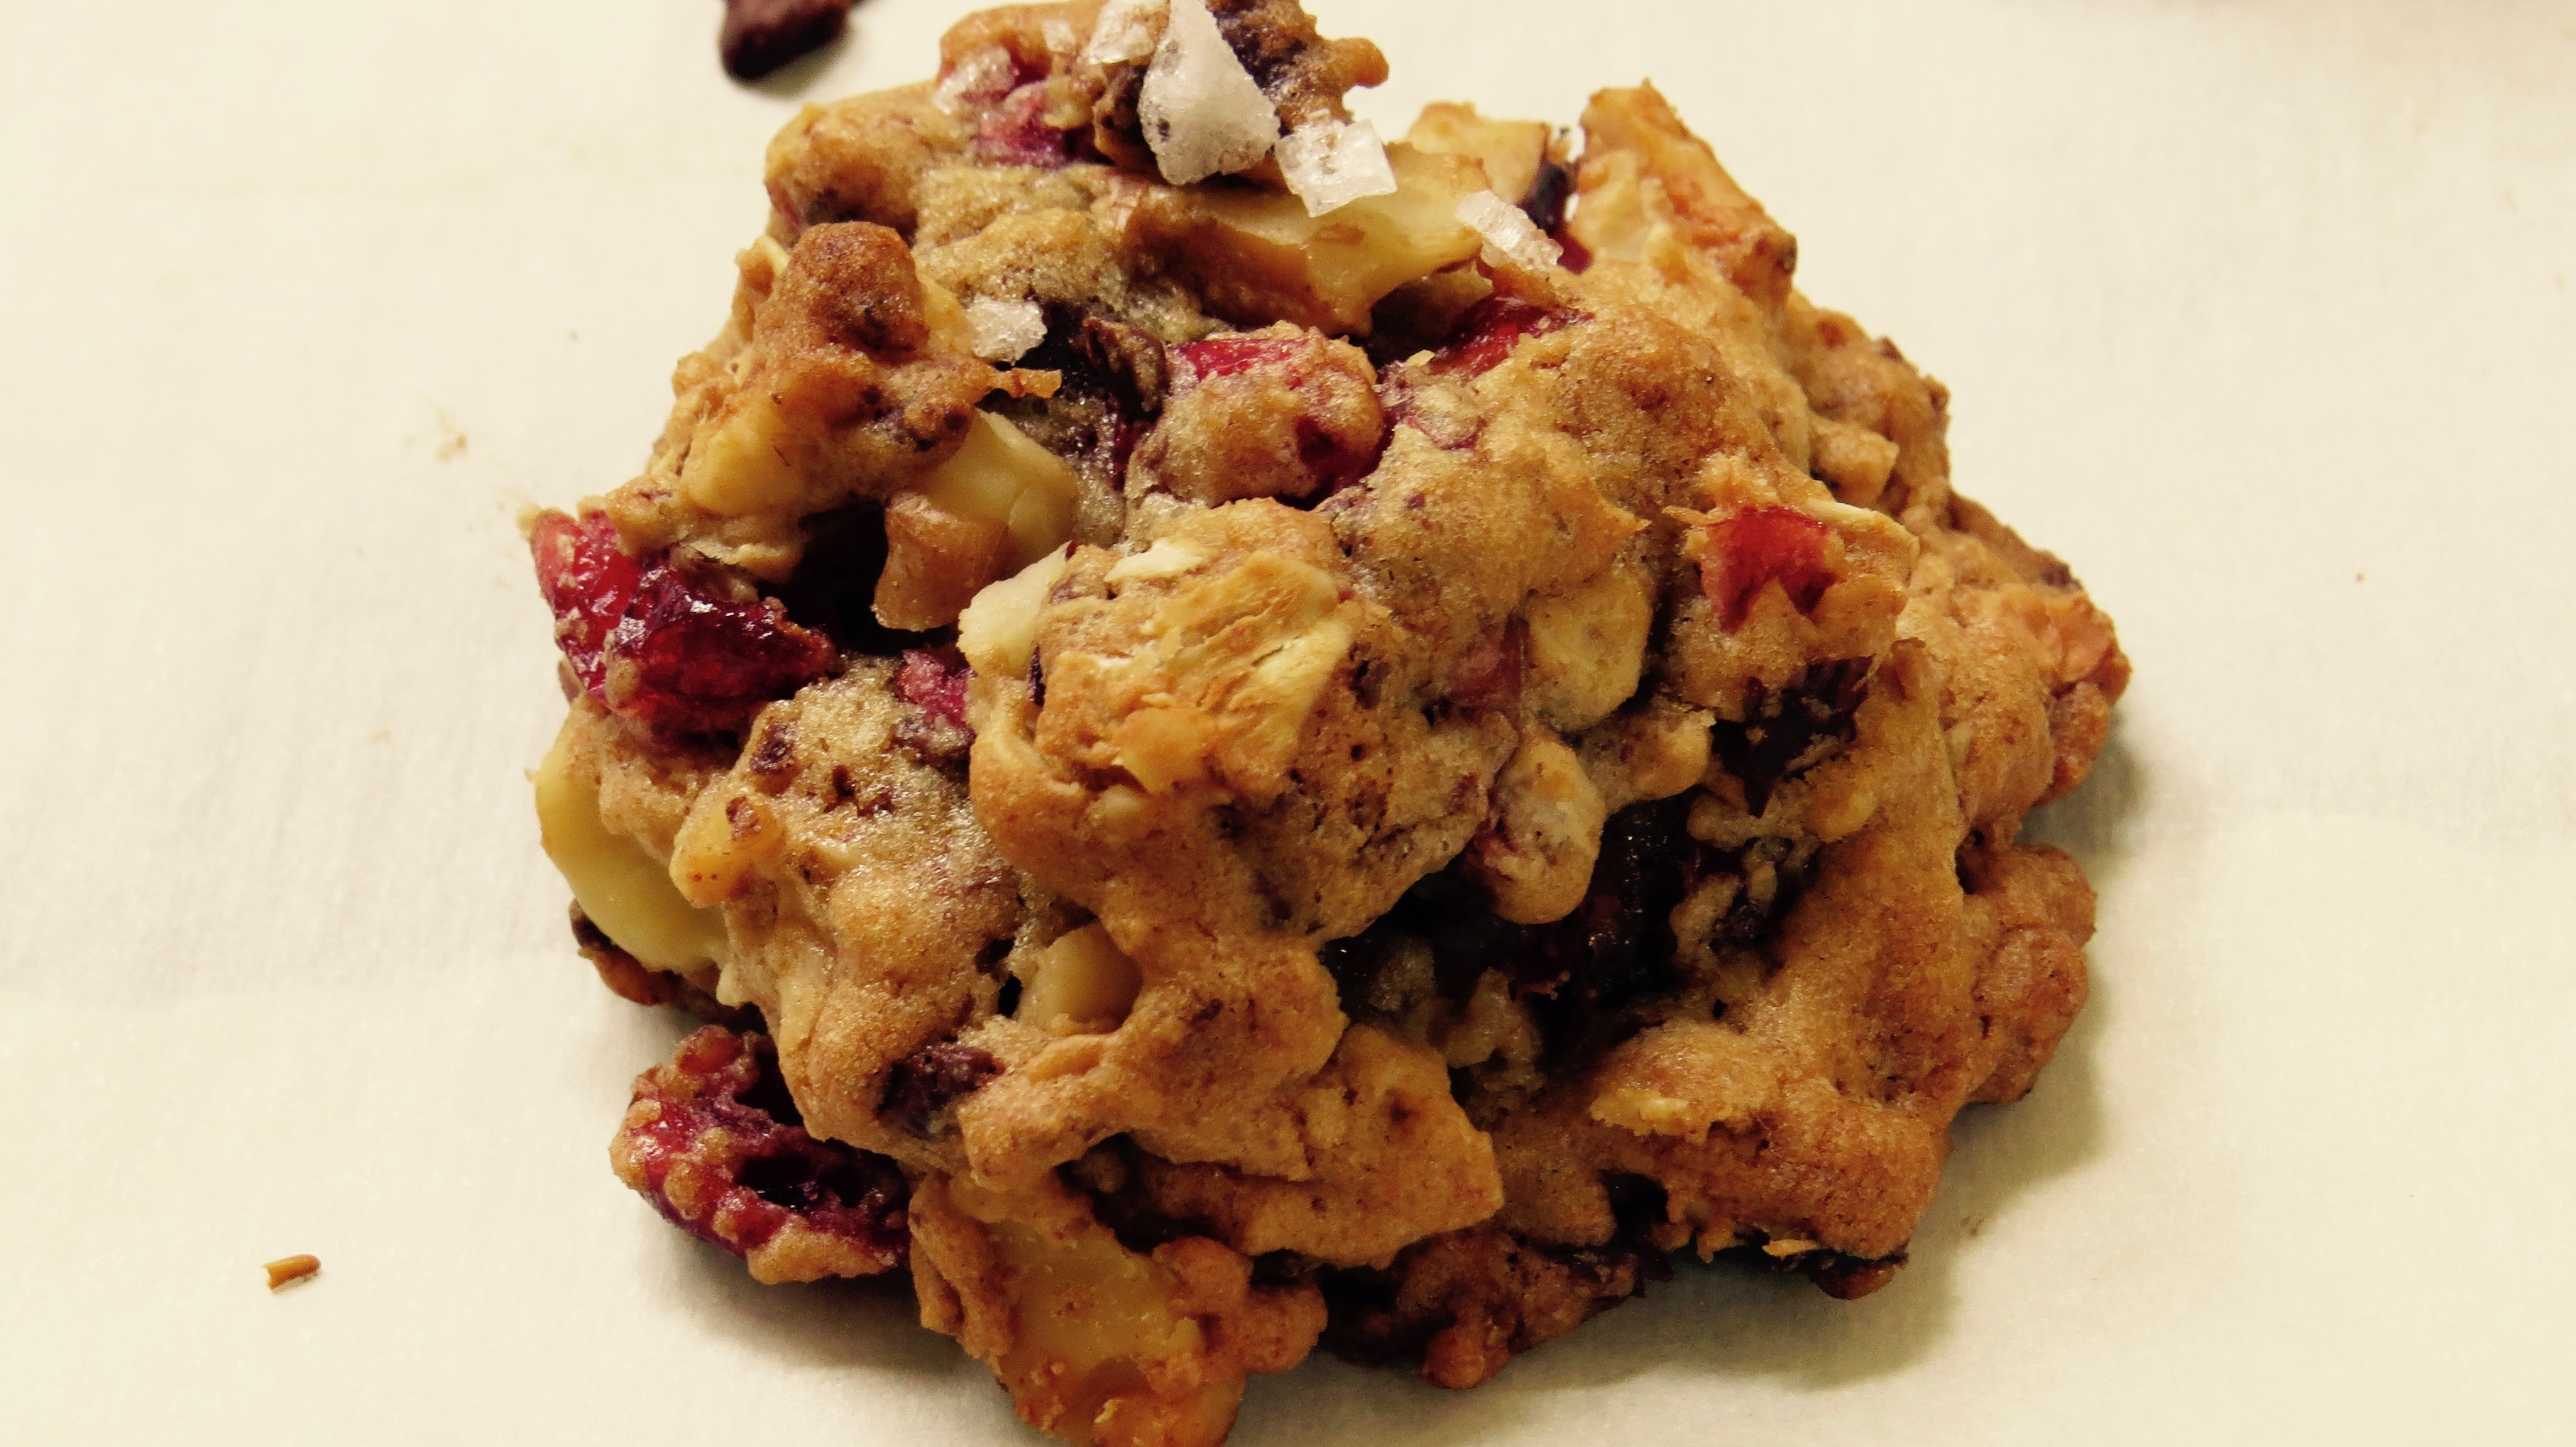 Mmmmm. dark chocolate, dried cherries, toasted walnuts and oatmeal - what's Better Than This?